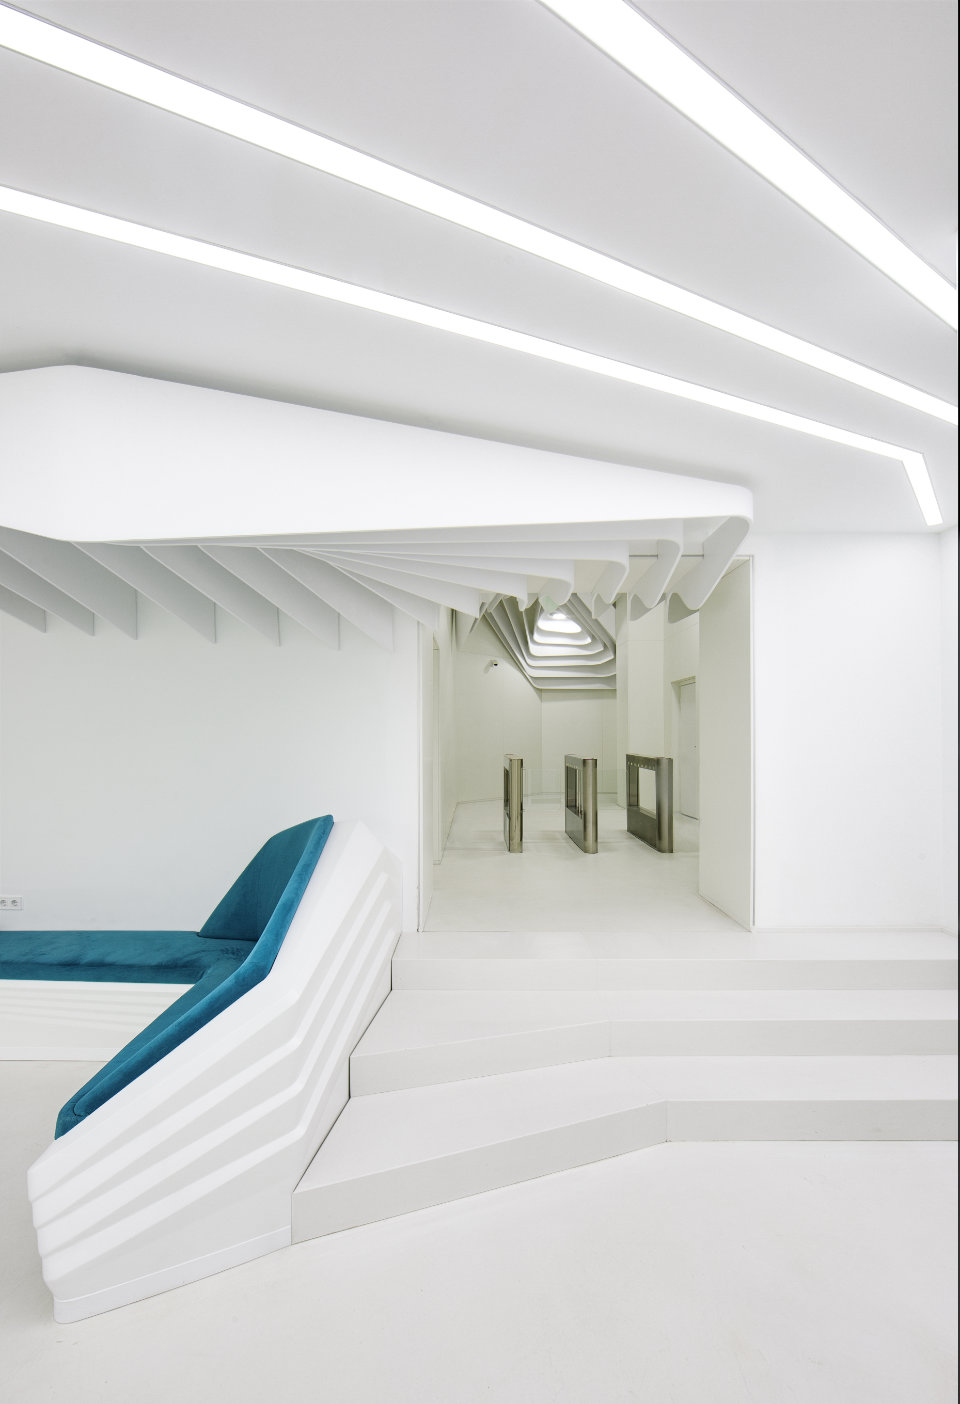 stairs design in luxury parametric oficce's hall